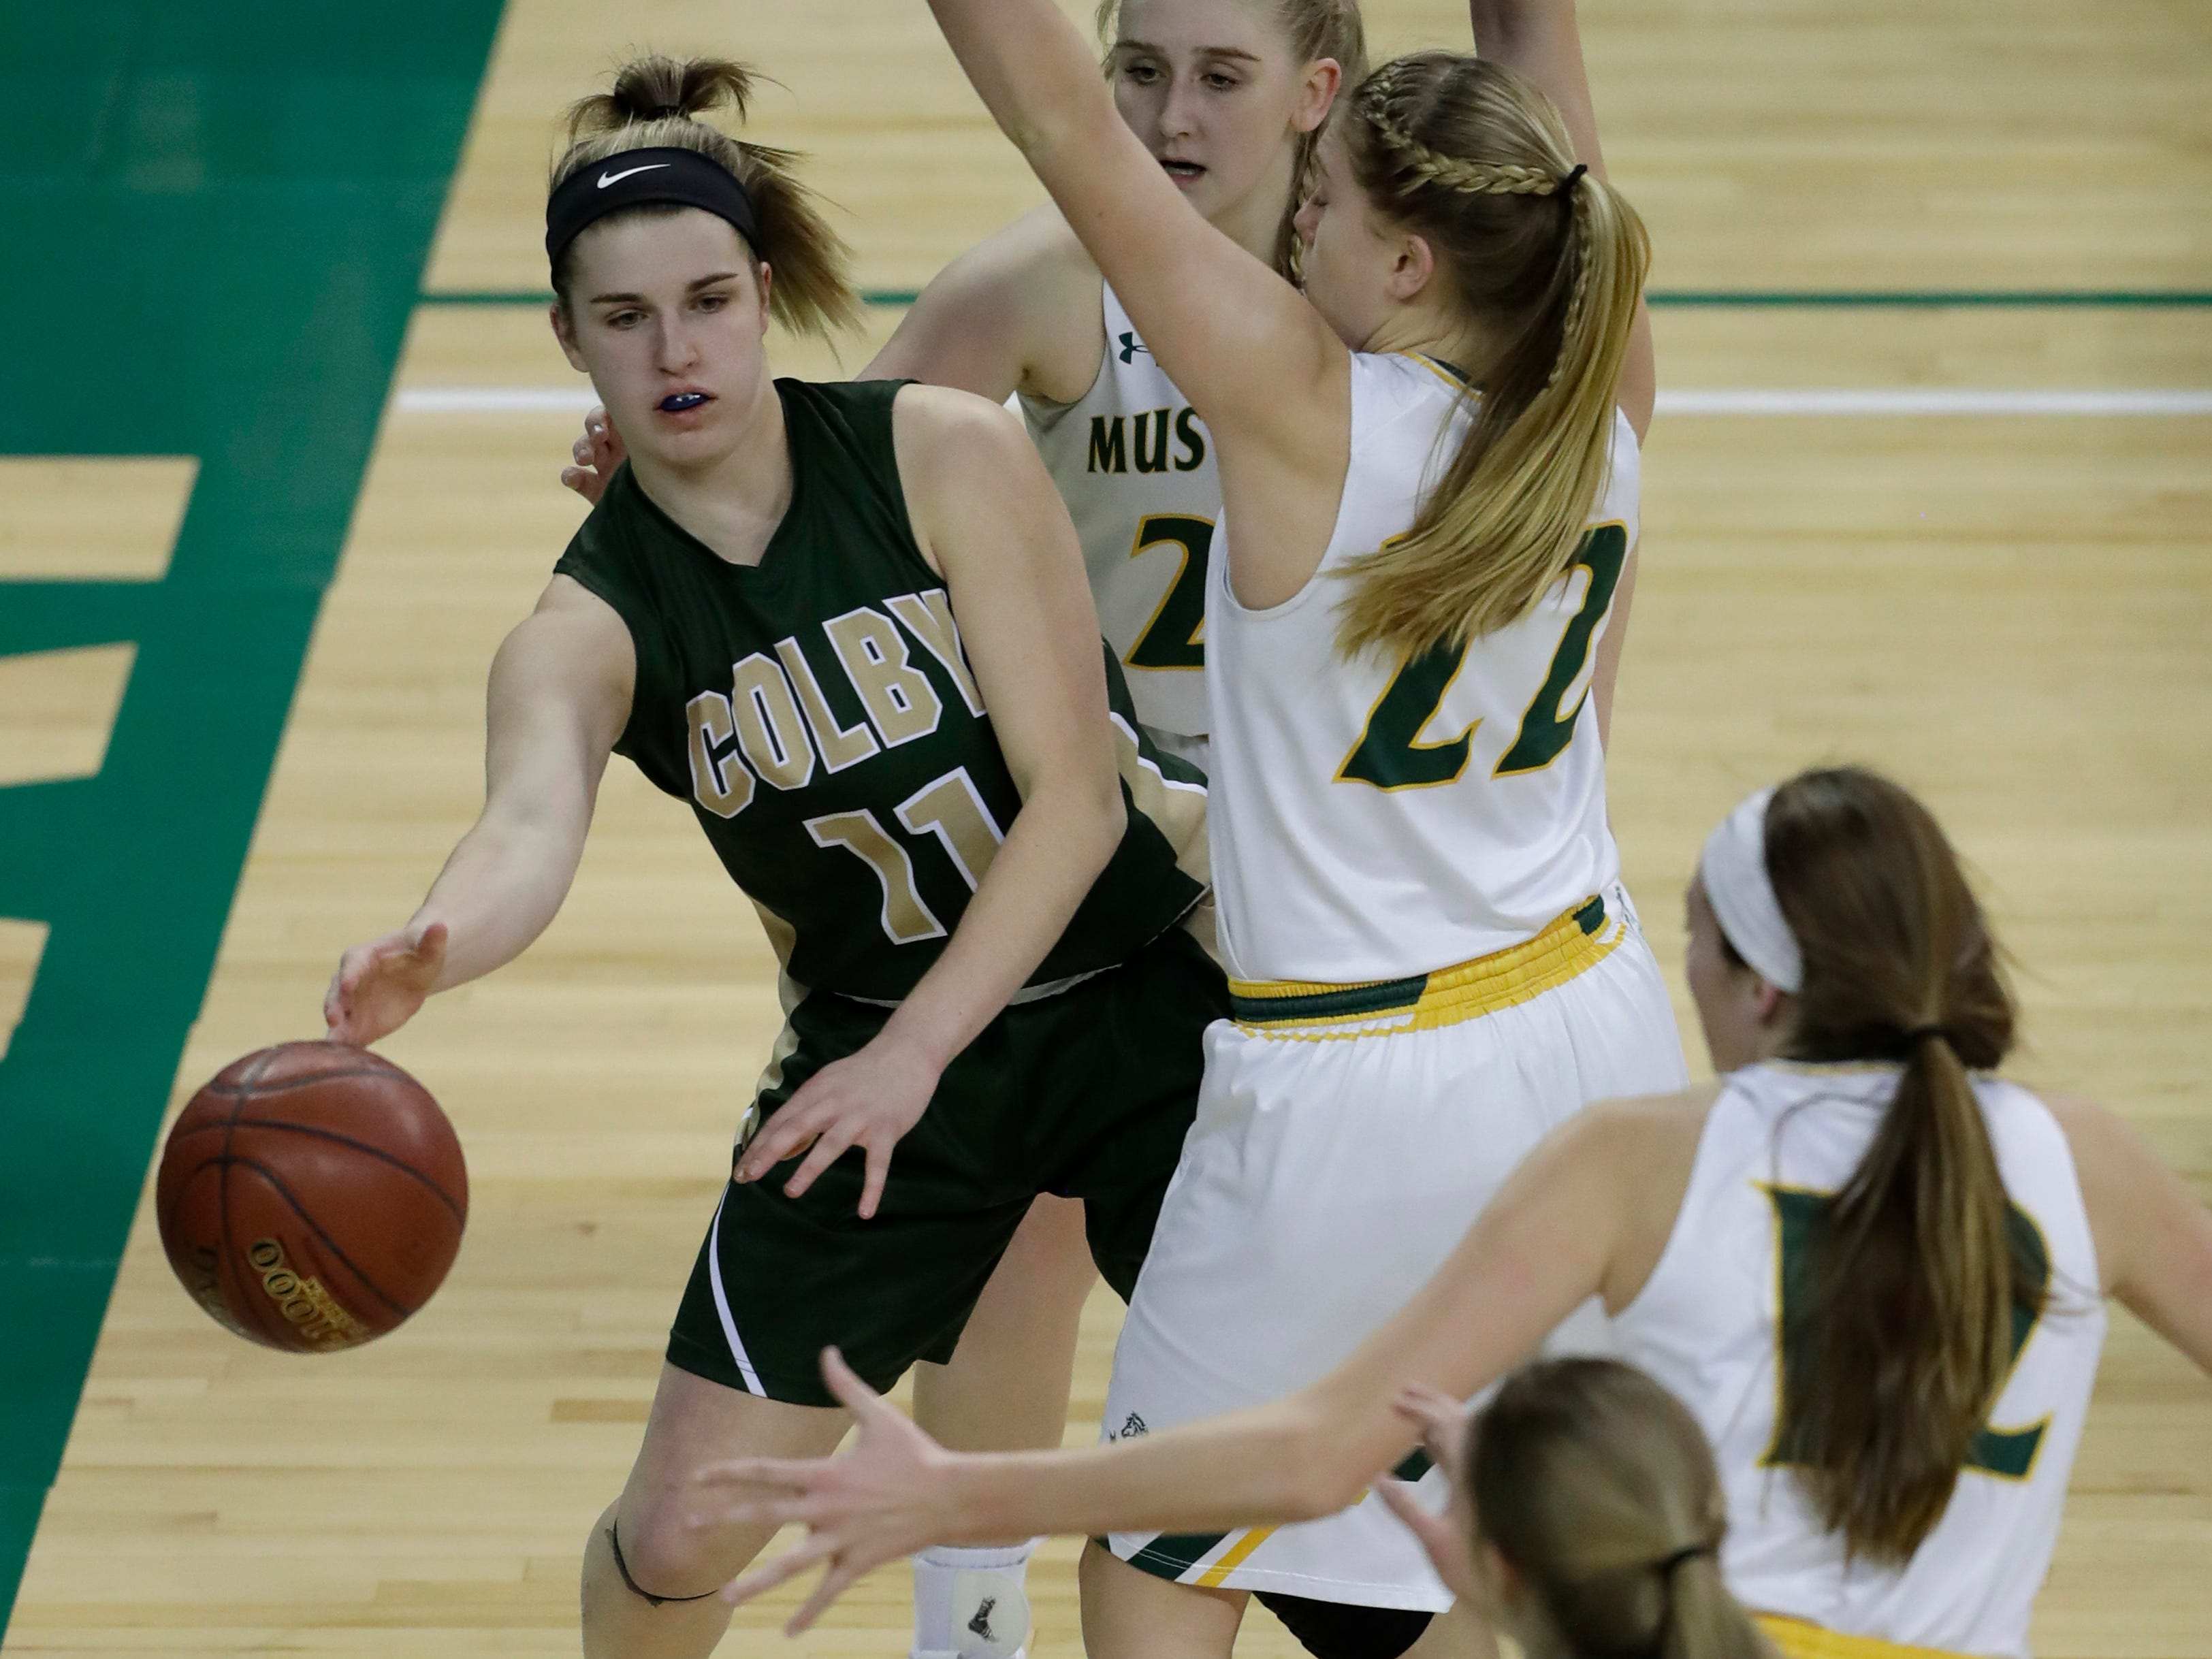 Colby's Hailey Voelker (11) passes the ball to Lexi Underwood (24) against Melrose-Mindoro during their Division 4 semifinal game at the WIAA girls state basketball tournament Thursday, March 7, 2019, at the Resch Center in Ashwaubenon, Wis.